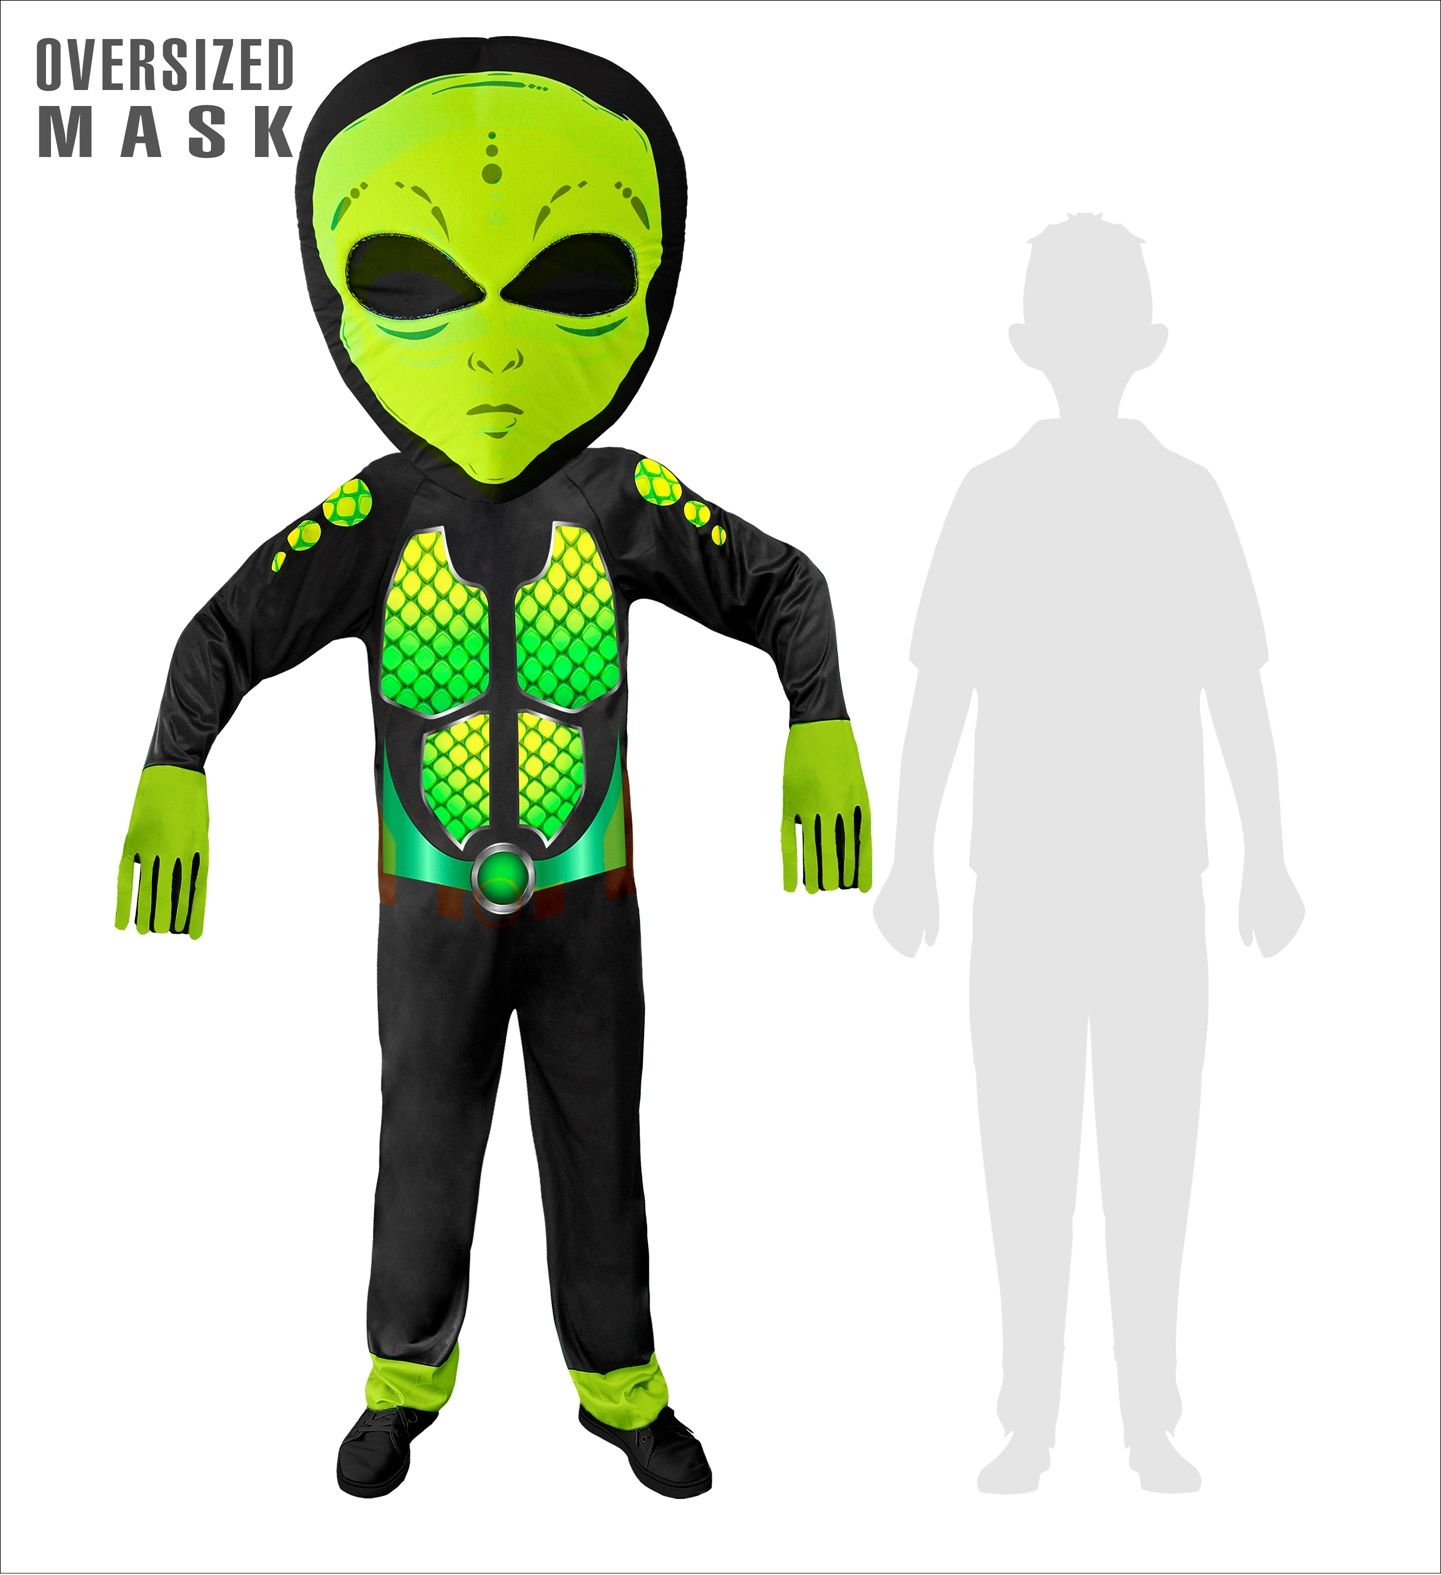 Alien outfit kind